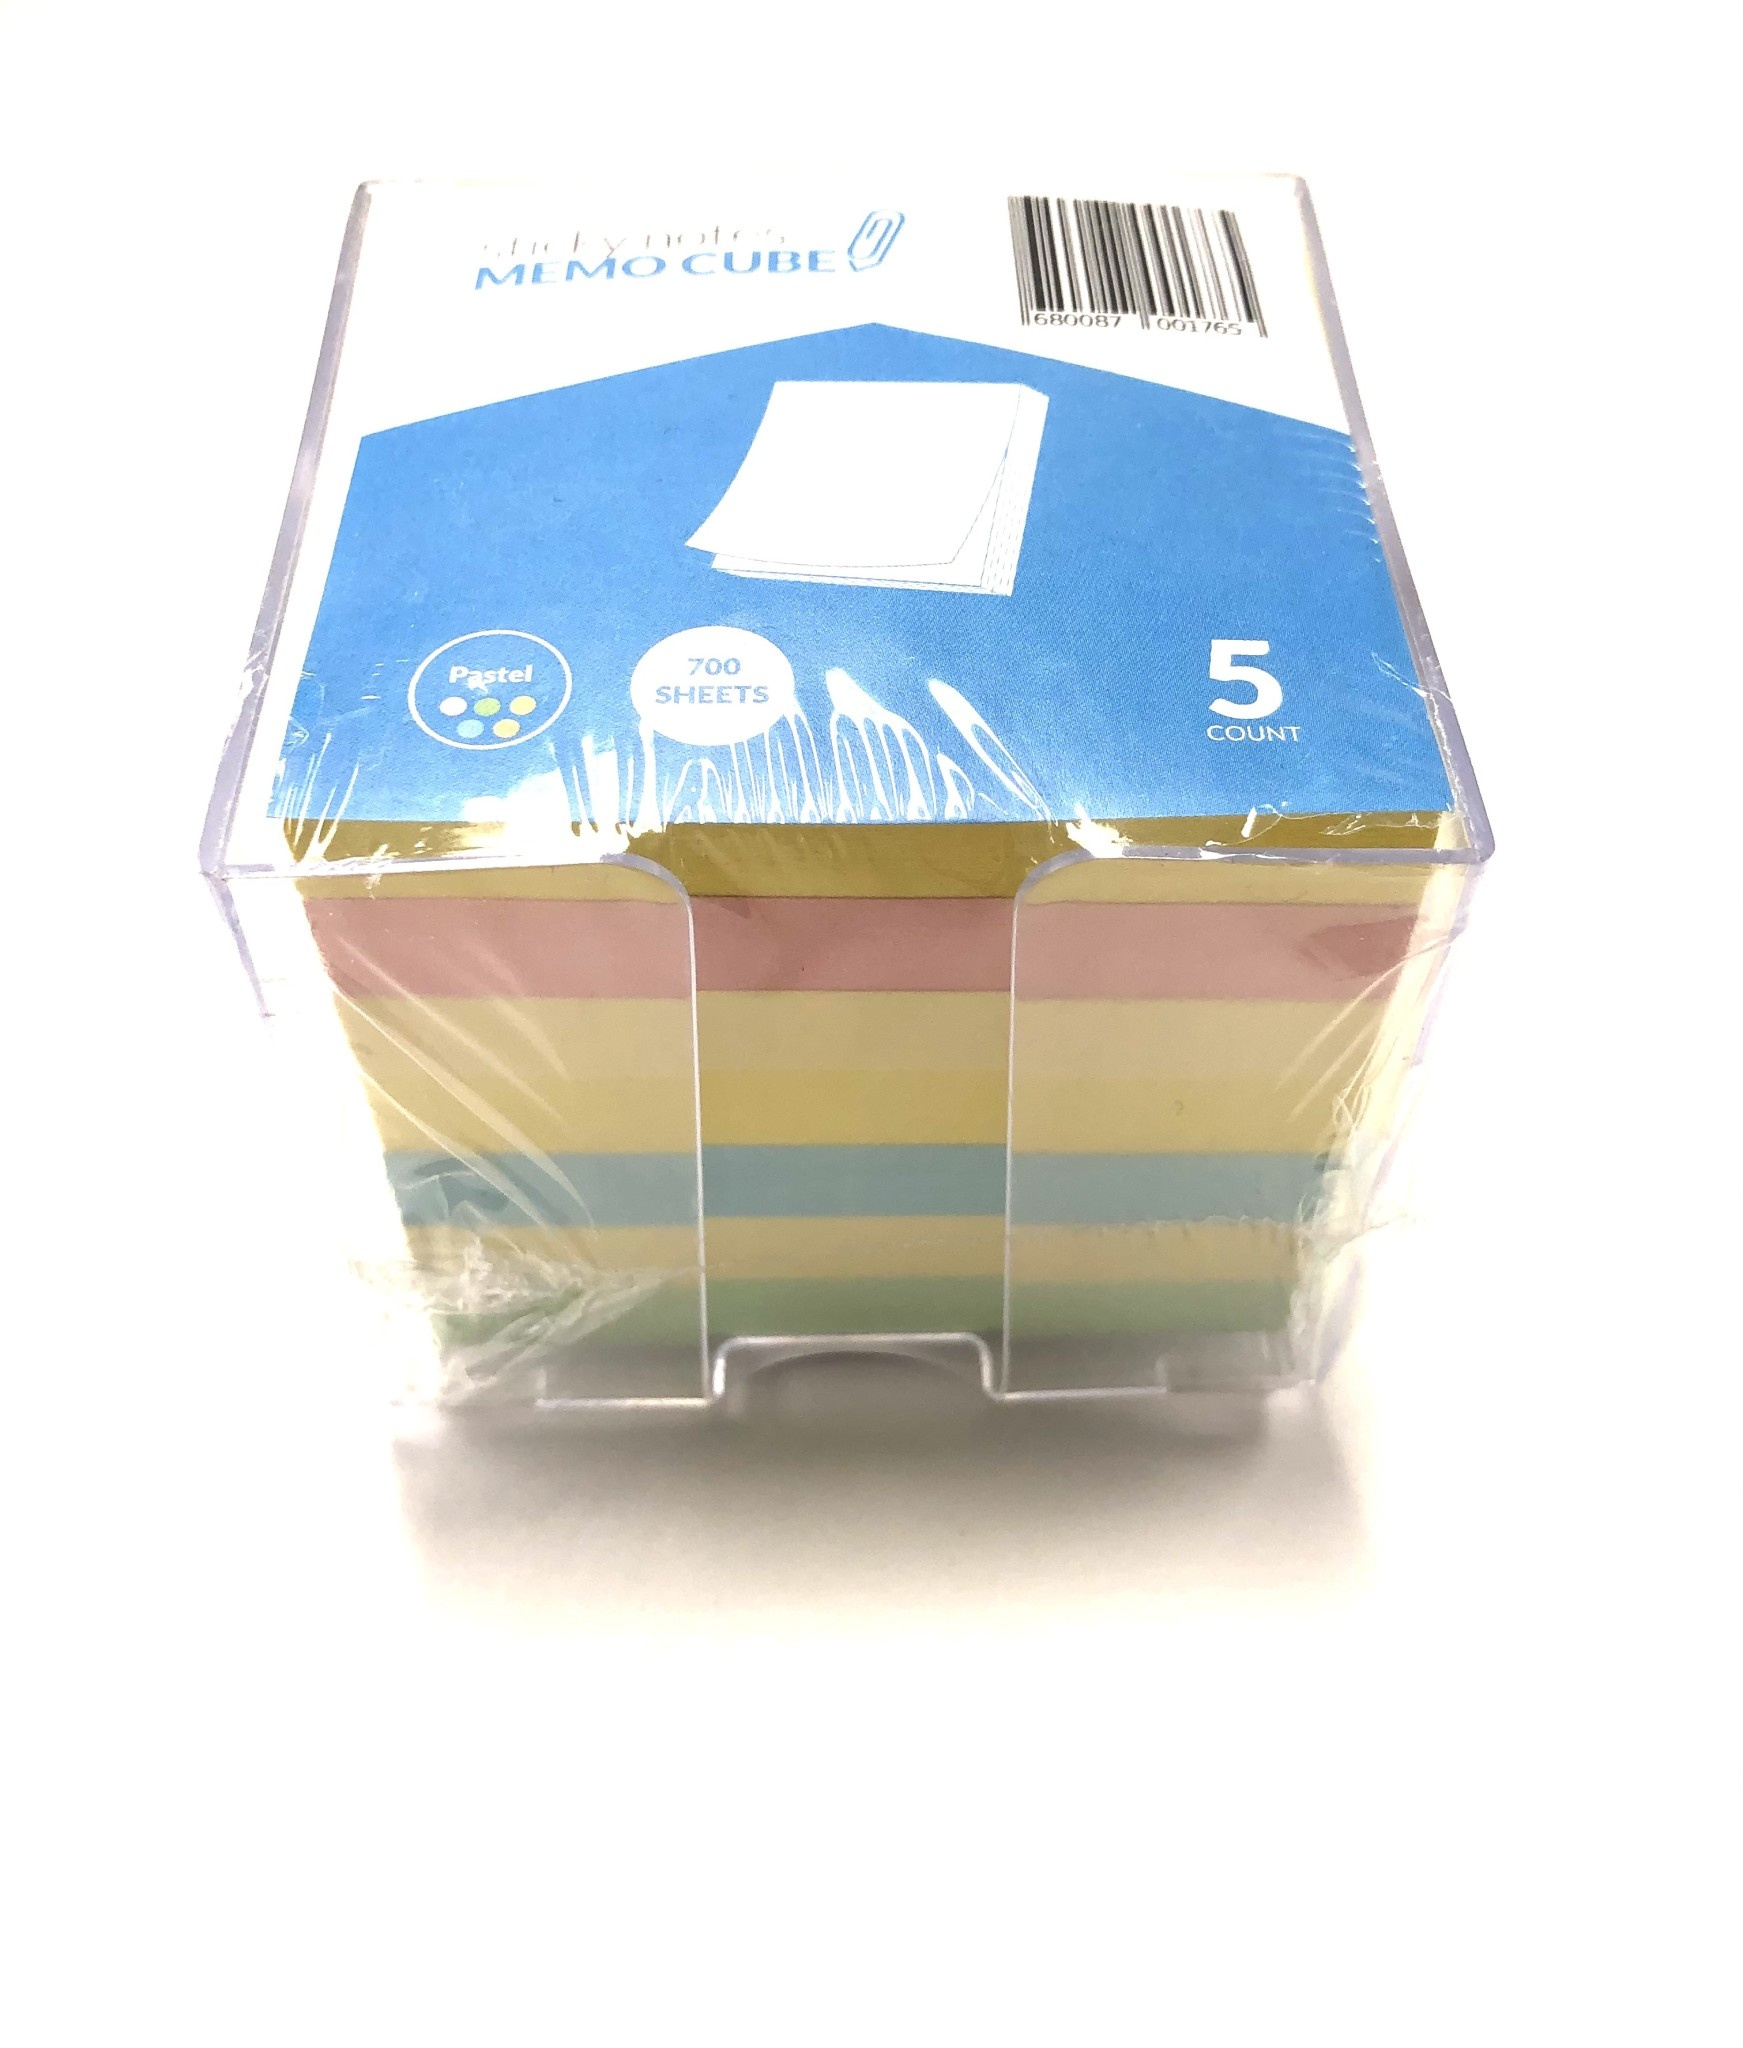 Sticky Notes Memo Cube in Holder